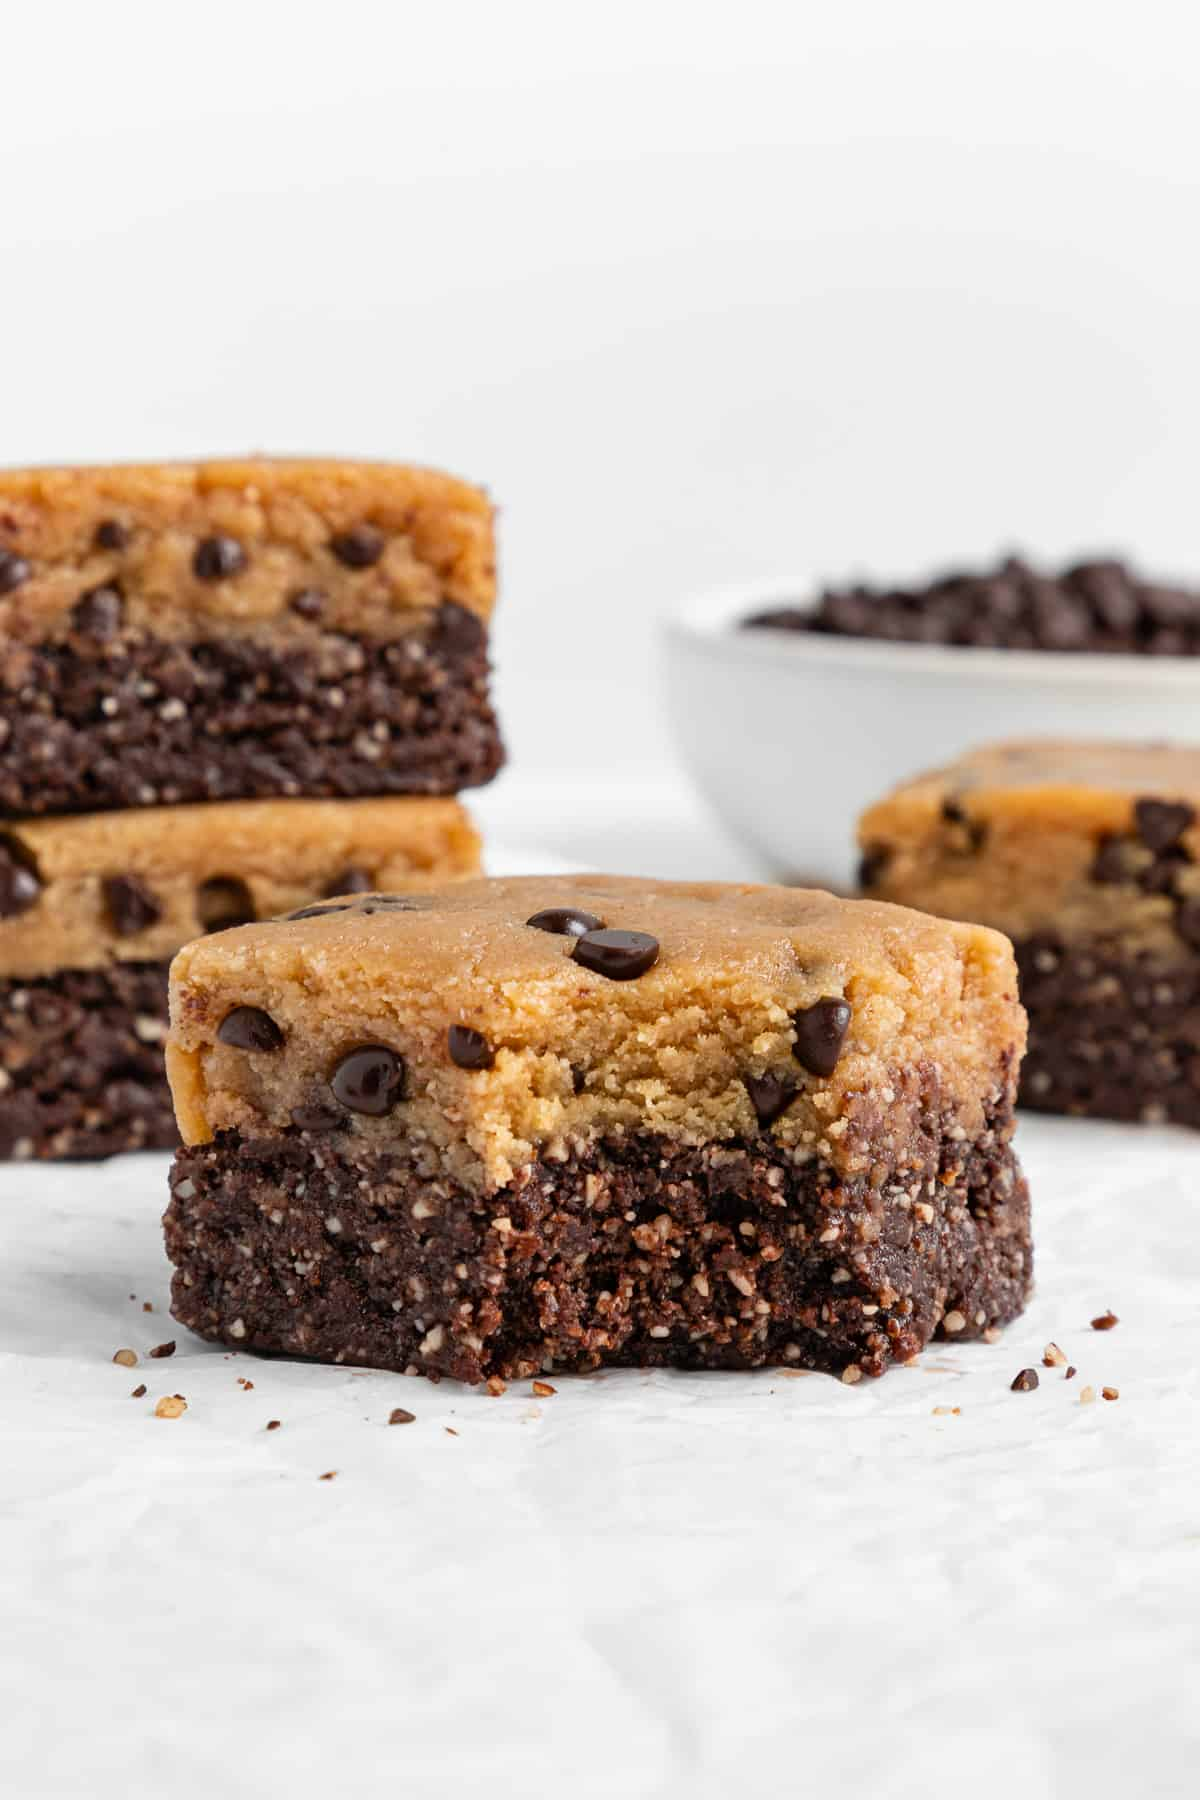 a no bake cookie dough brownie with a bite taken out of it, surrounded by more brownies